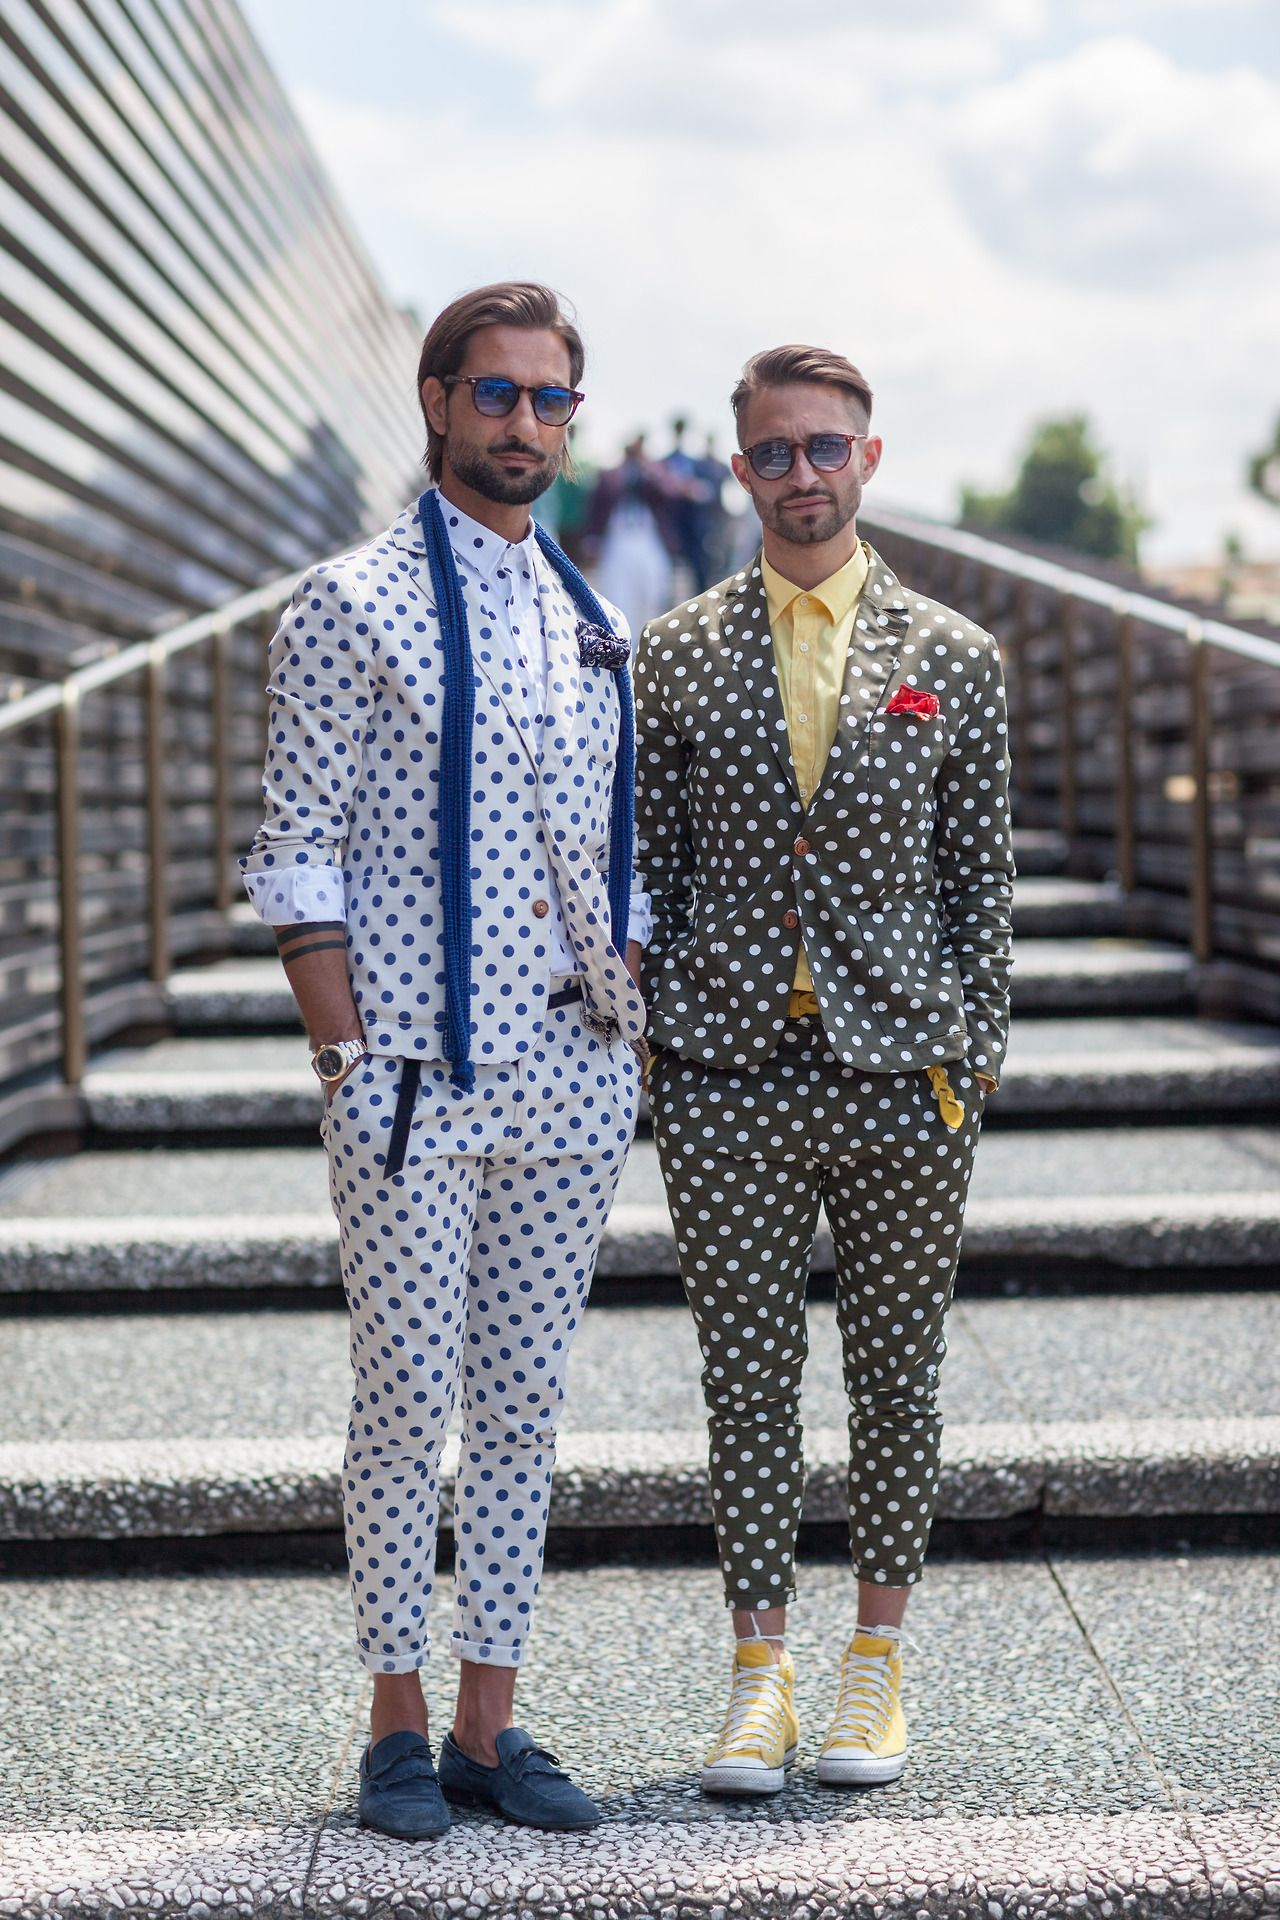 More coordinated pairings outside the Pitti Uomo trade show in Florence Szymon Brzóska for WGSN street shot, Pitti Uomo S/S 15